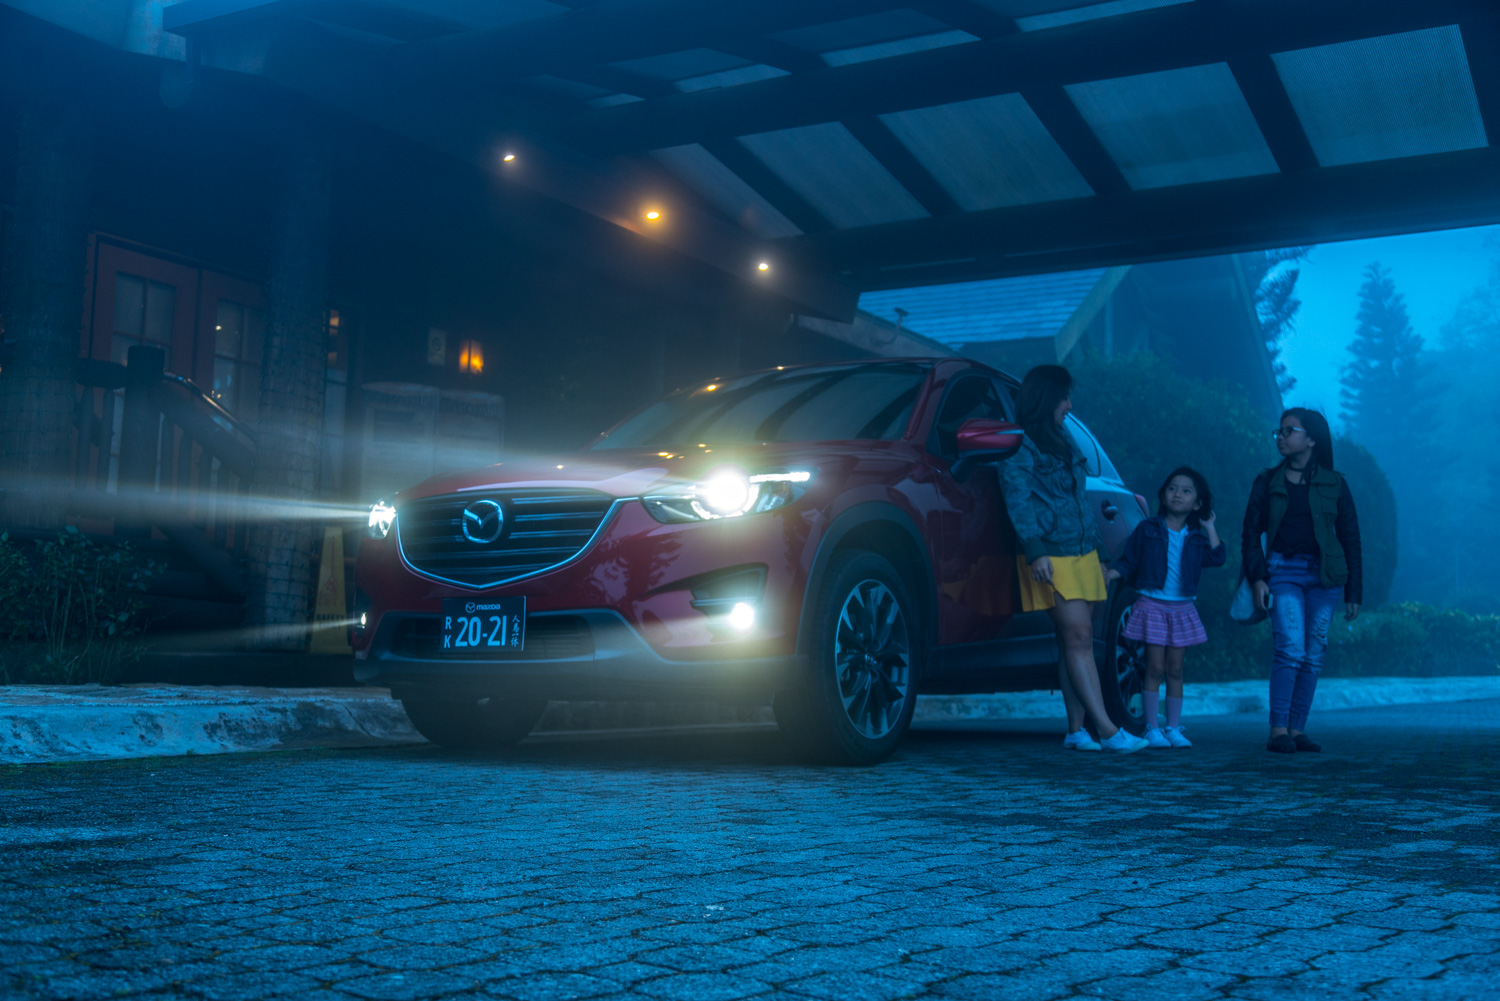 We'd like to extend our sincerest appreciation to Mazda Philippines for letting us enjoy the CX-5 for this road trip. More about the Mazda CX-5 2.2 SkyActiv-D coming soon on  Opus Macchina .